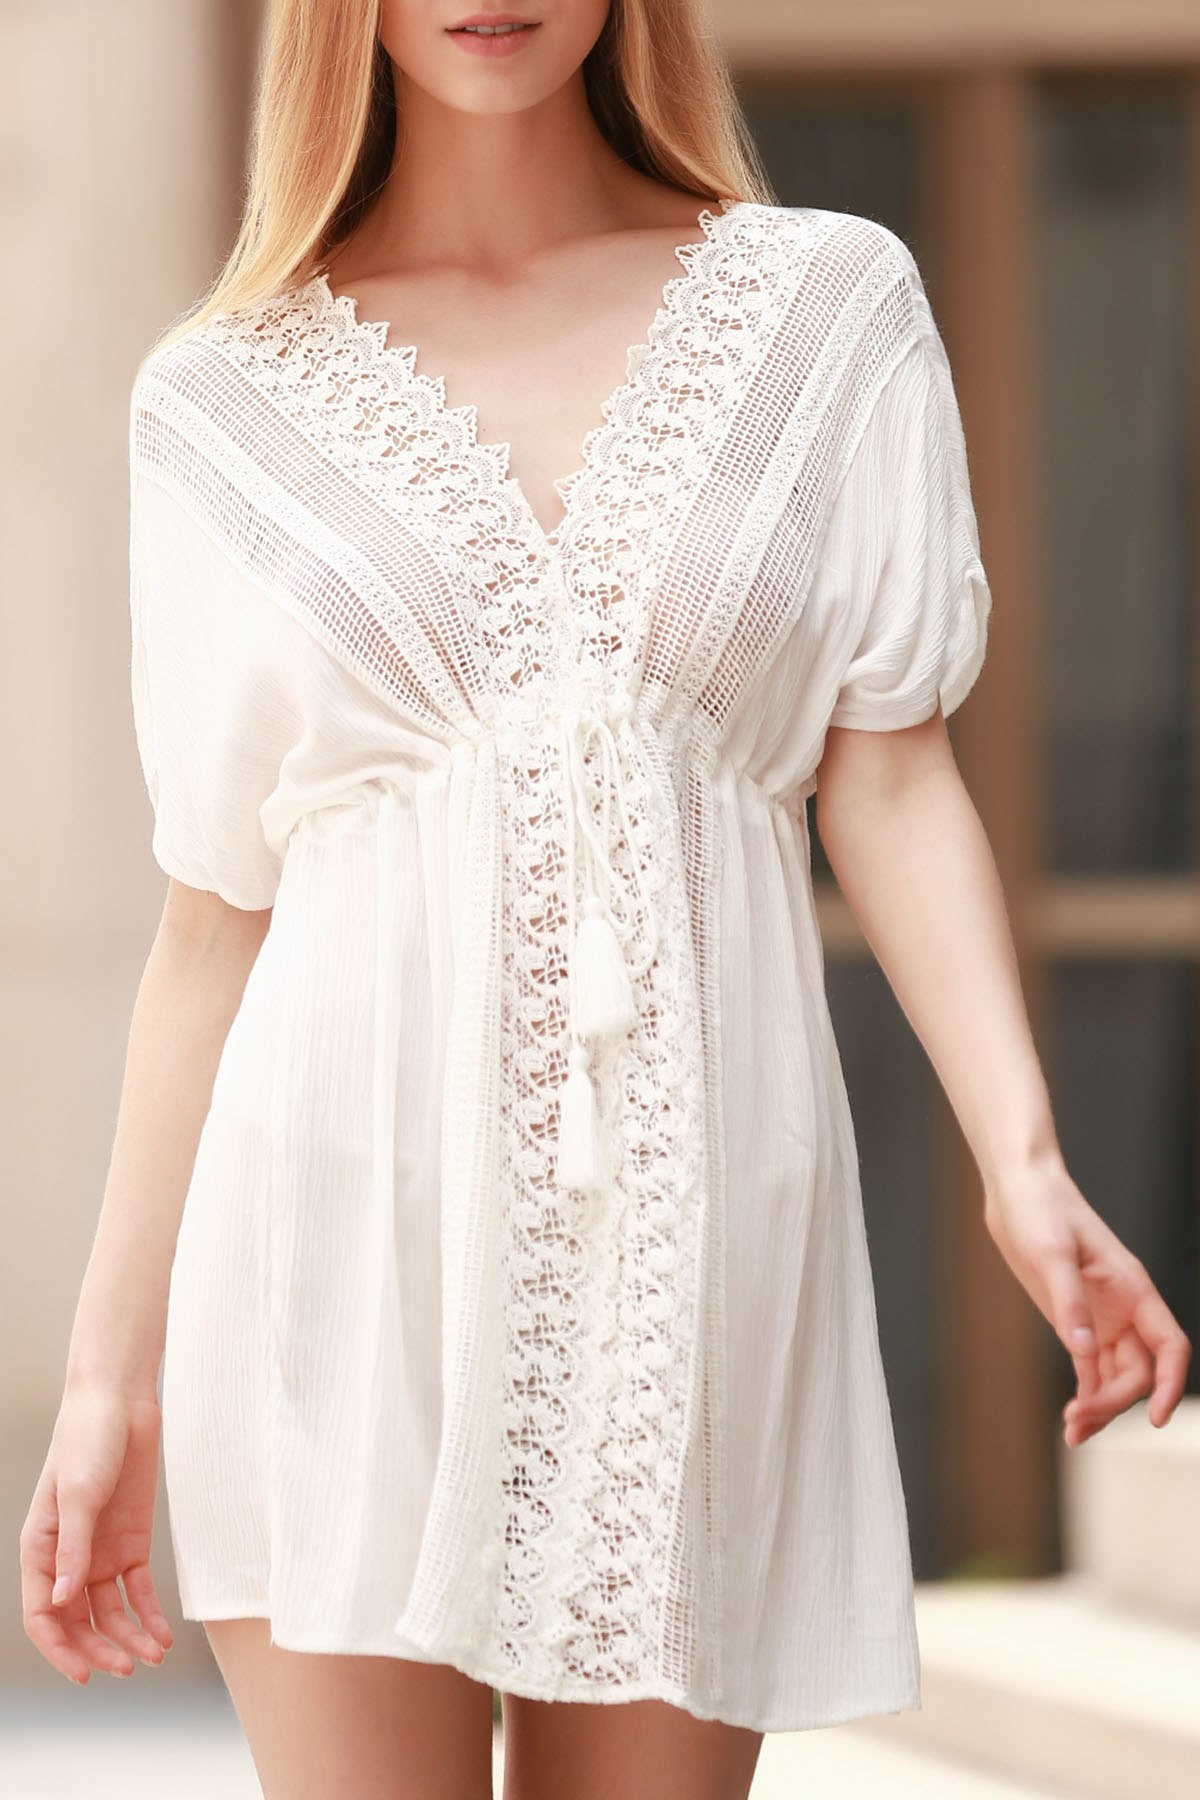 Plunging Neck Hollow Lace-Up White Cover-Up - WHITE ONE SIZE(FIT SIZE XS TO M)